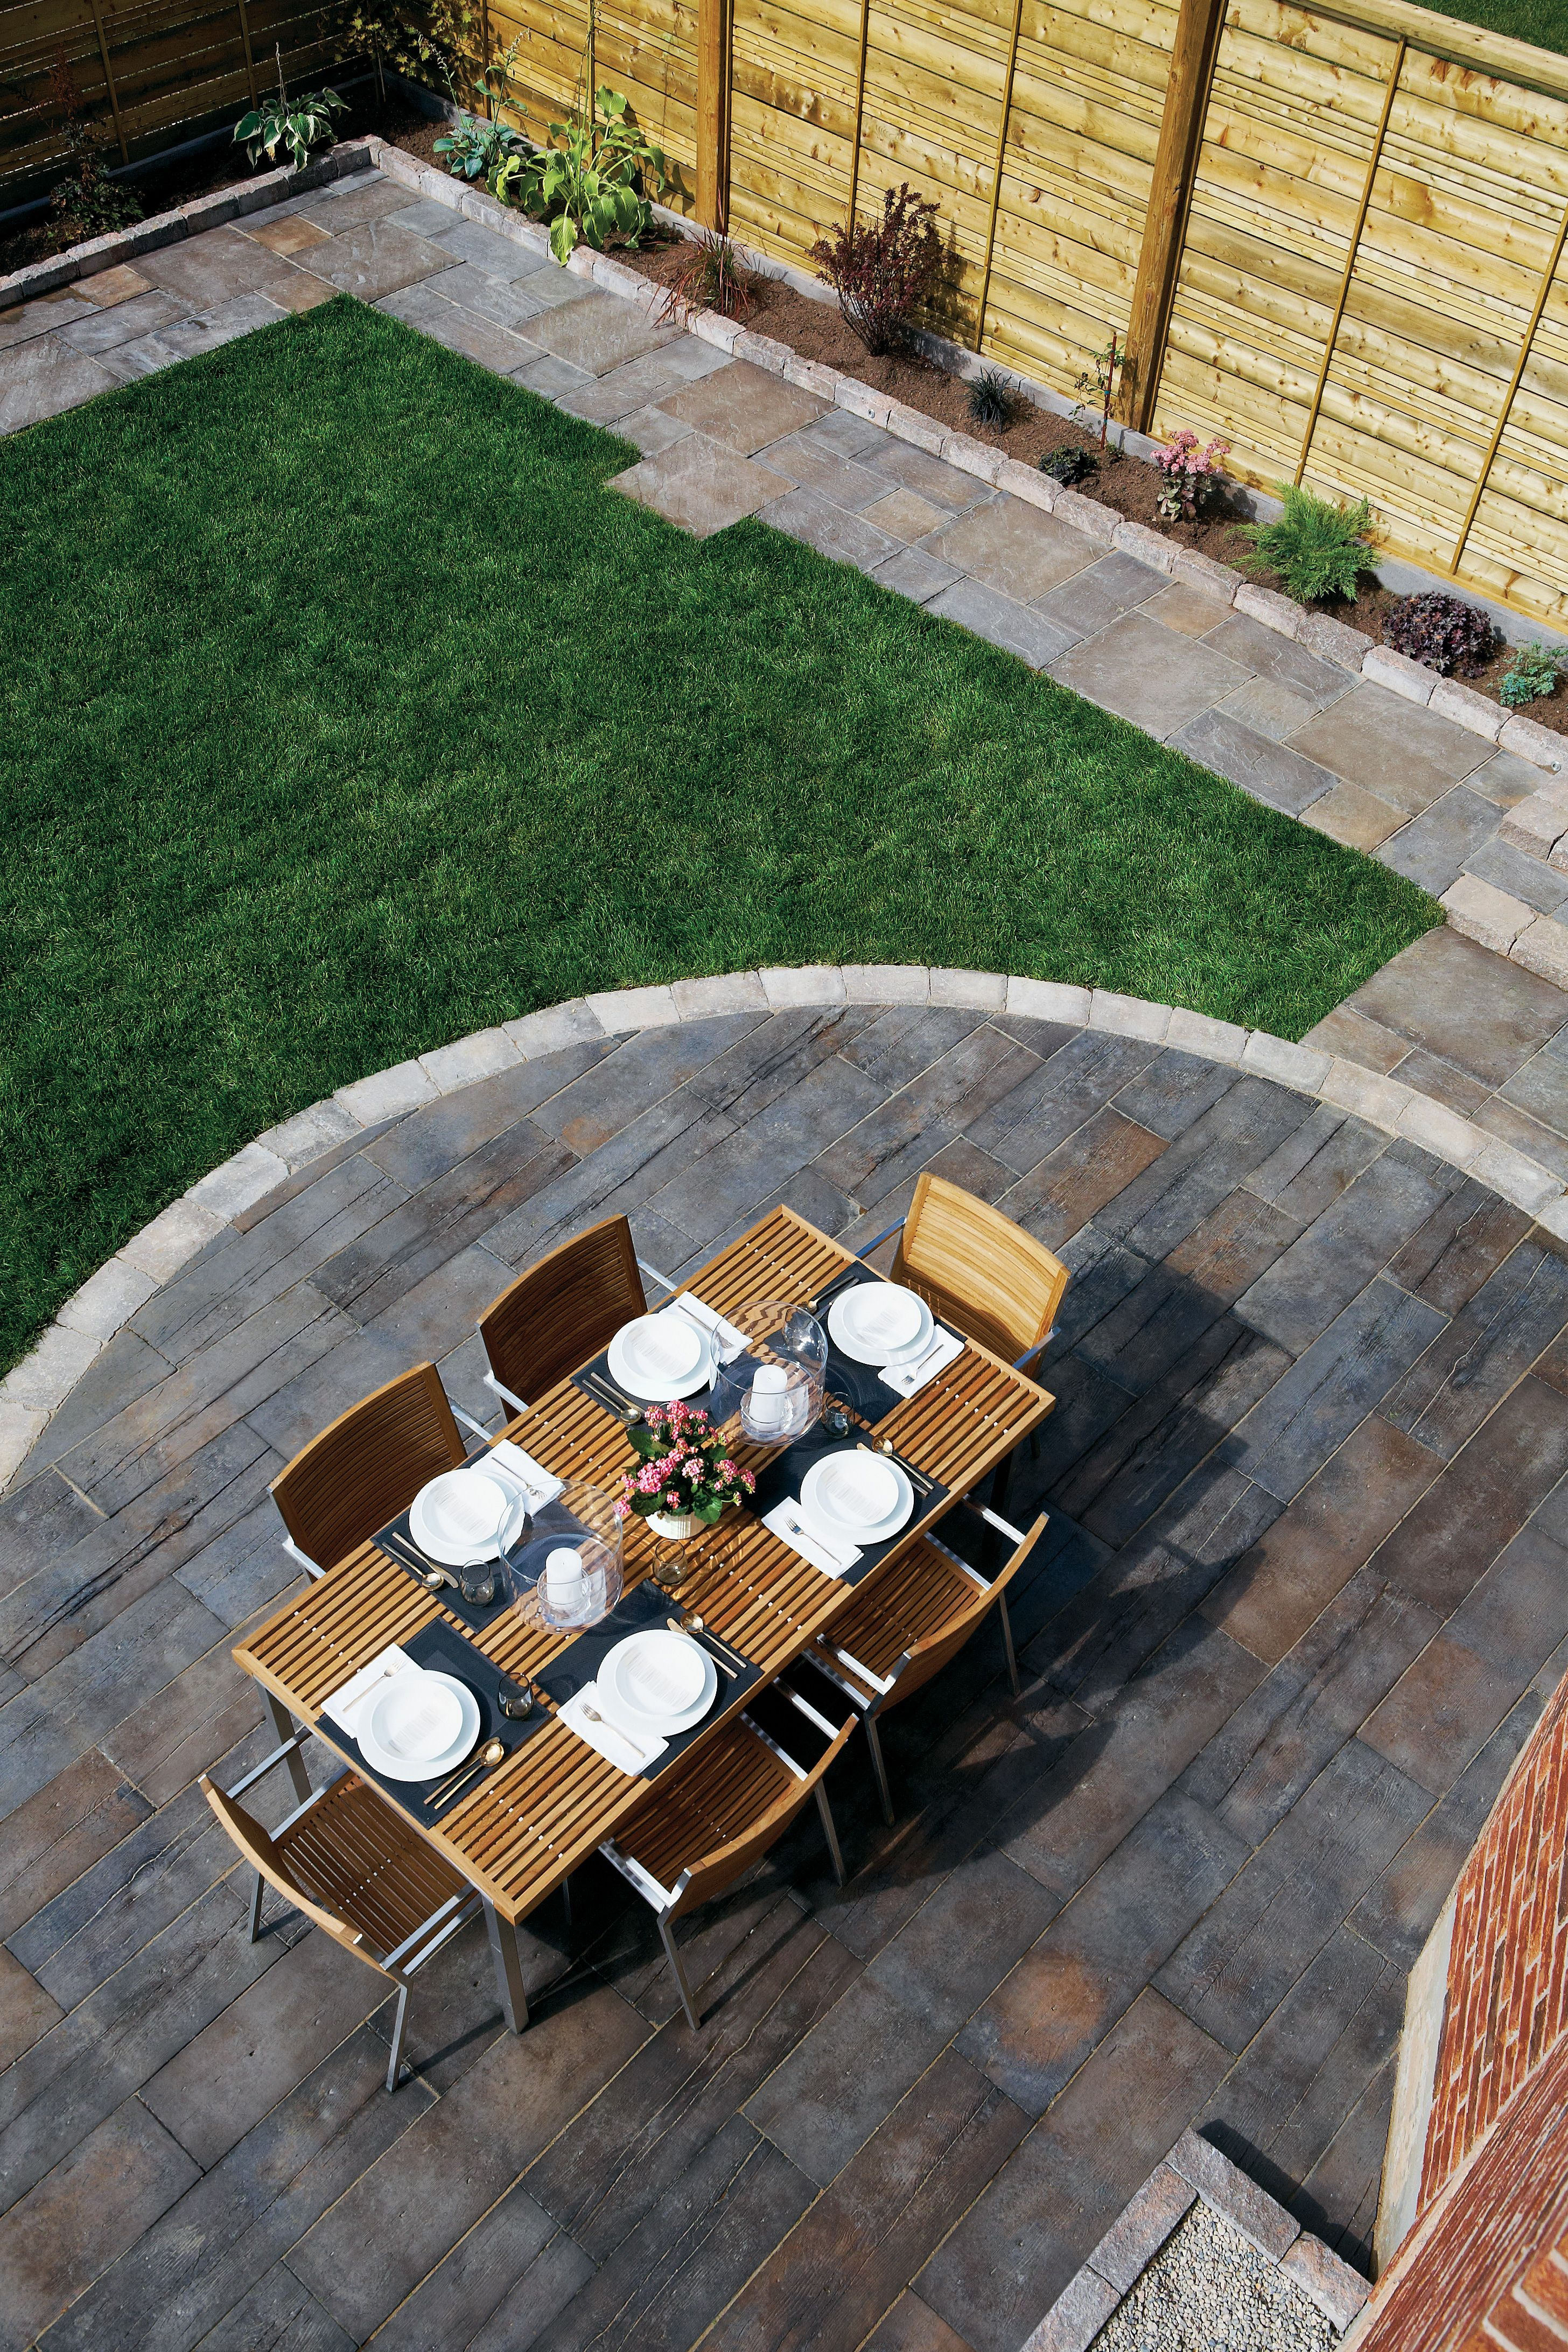 Brooklin Barnboard Concrete Patio Slabs I Want Stamped Concrete That Looks  Like Rustic Wood With Nail